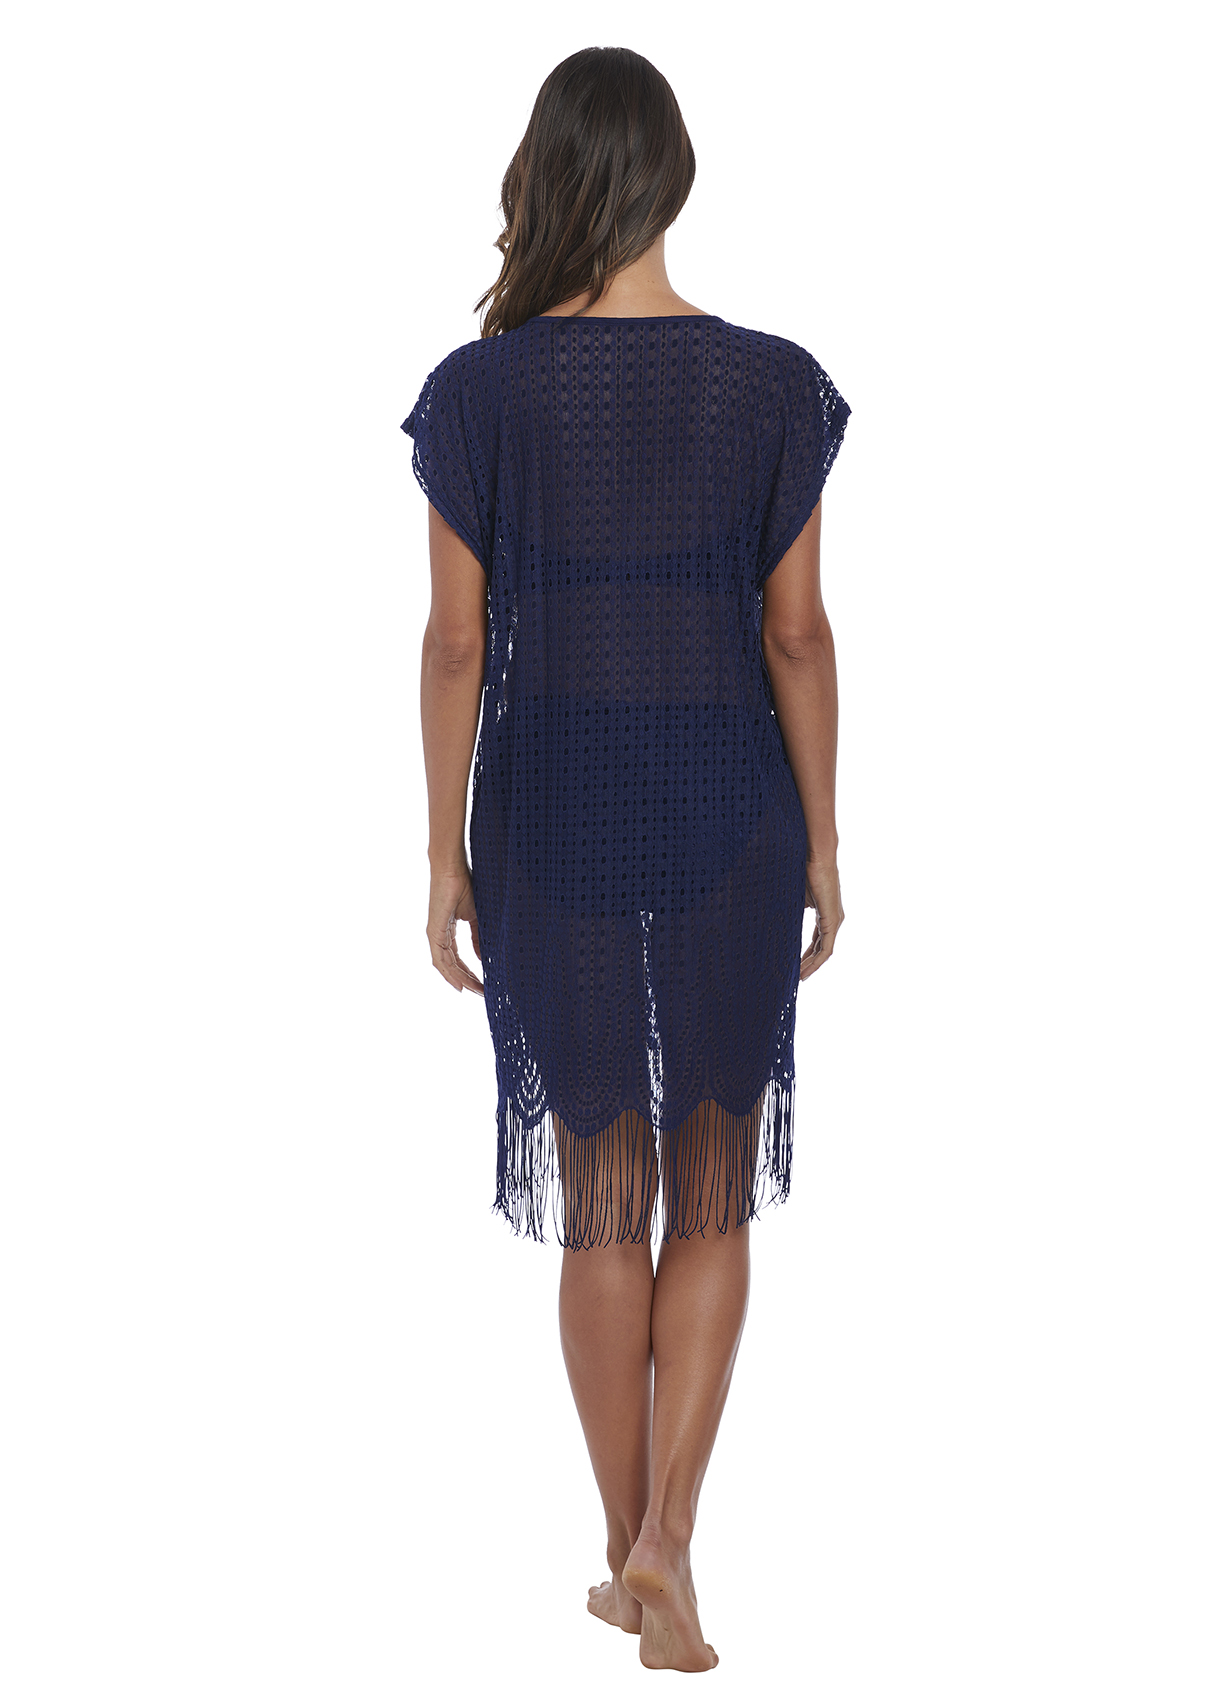 Fantasie Antheia tunic dress